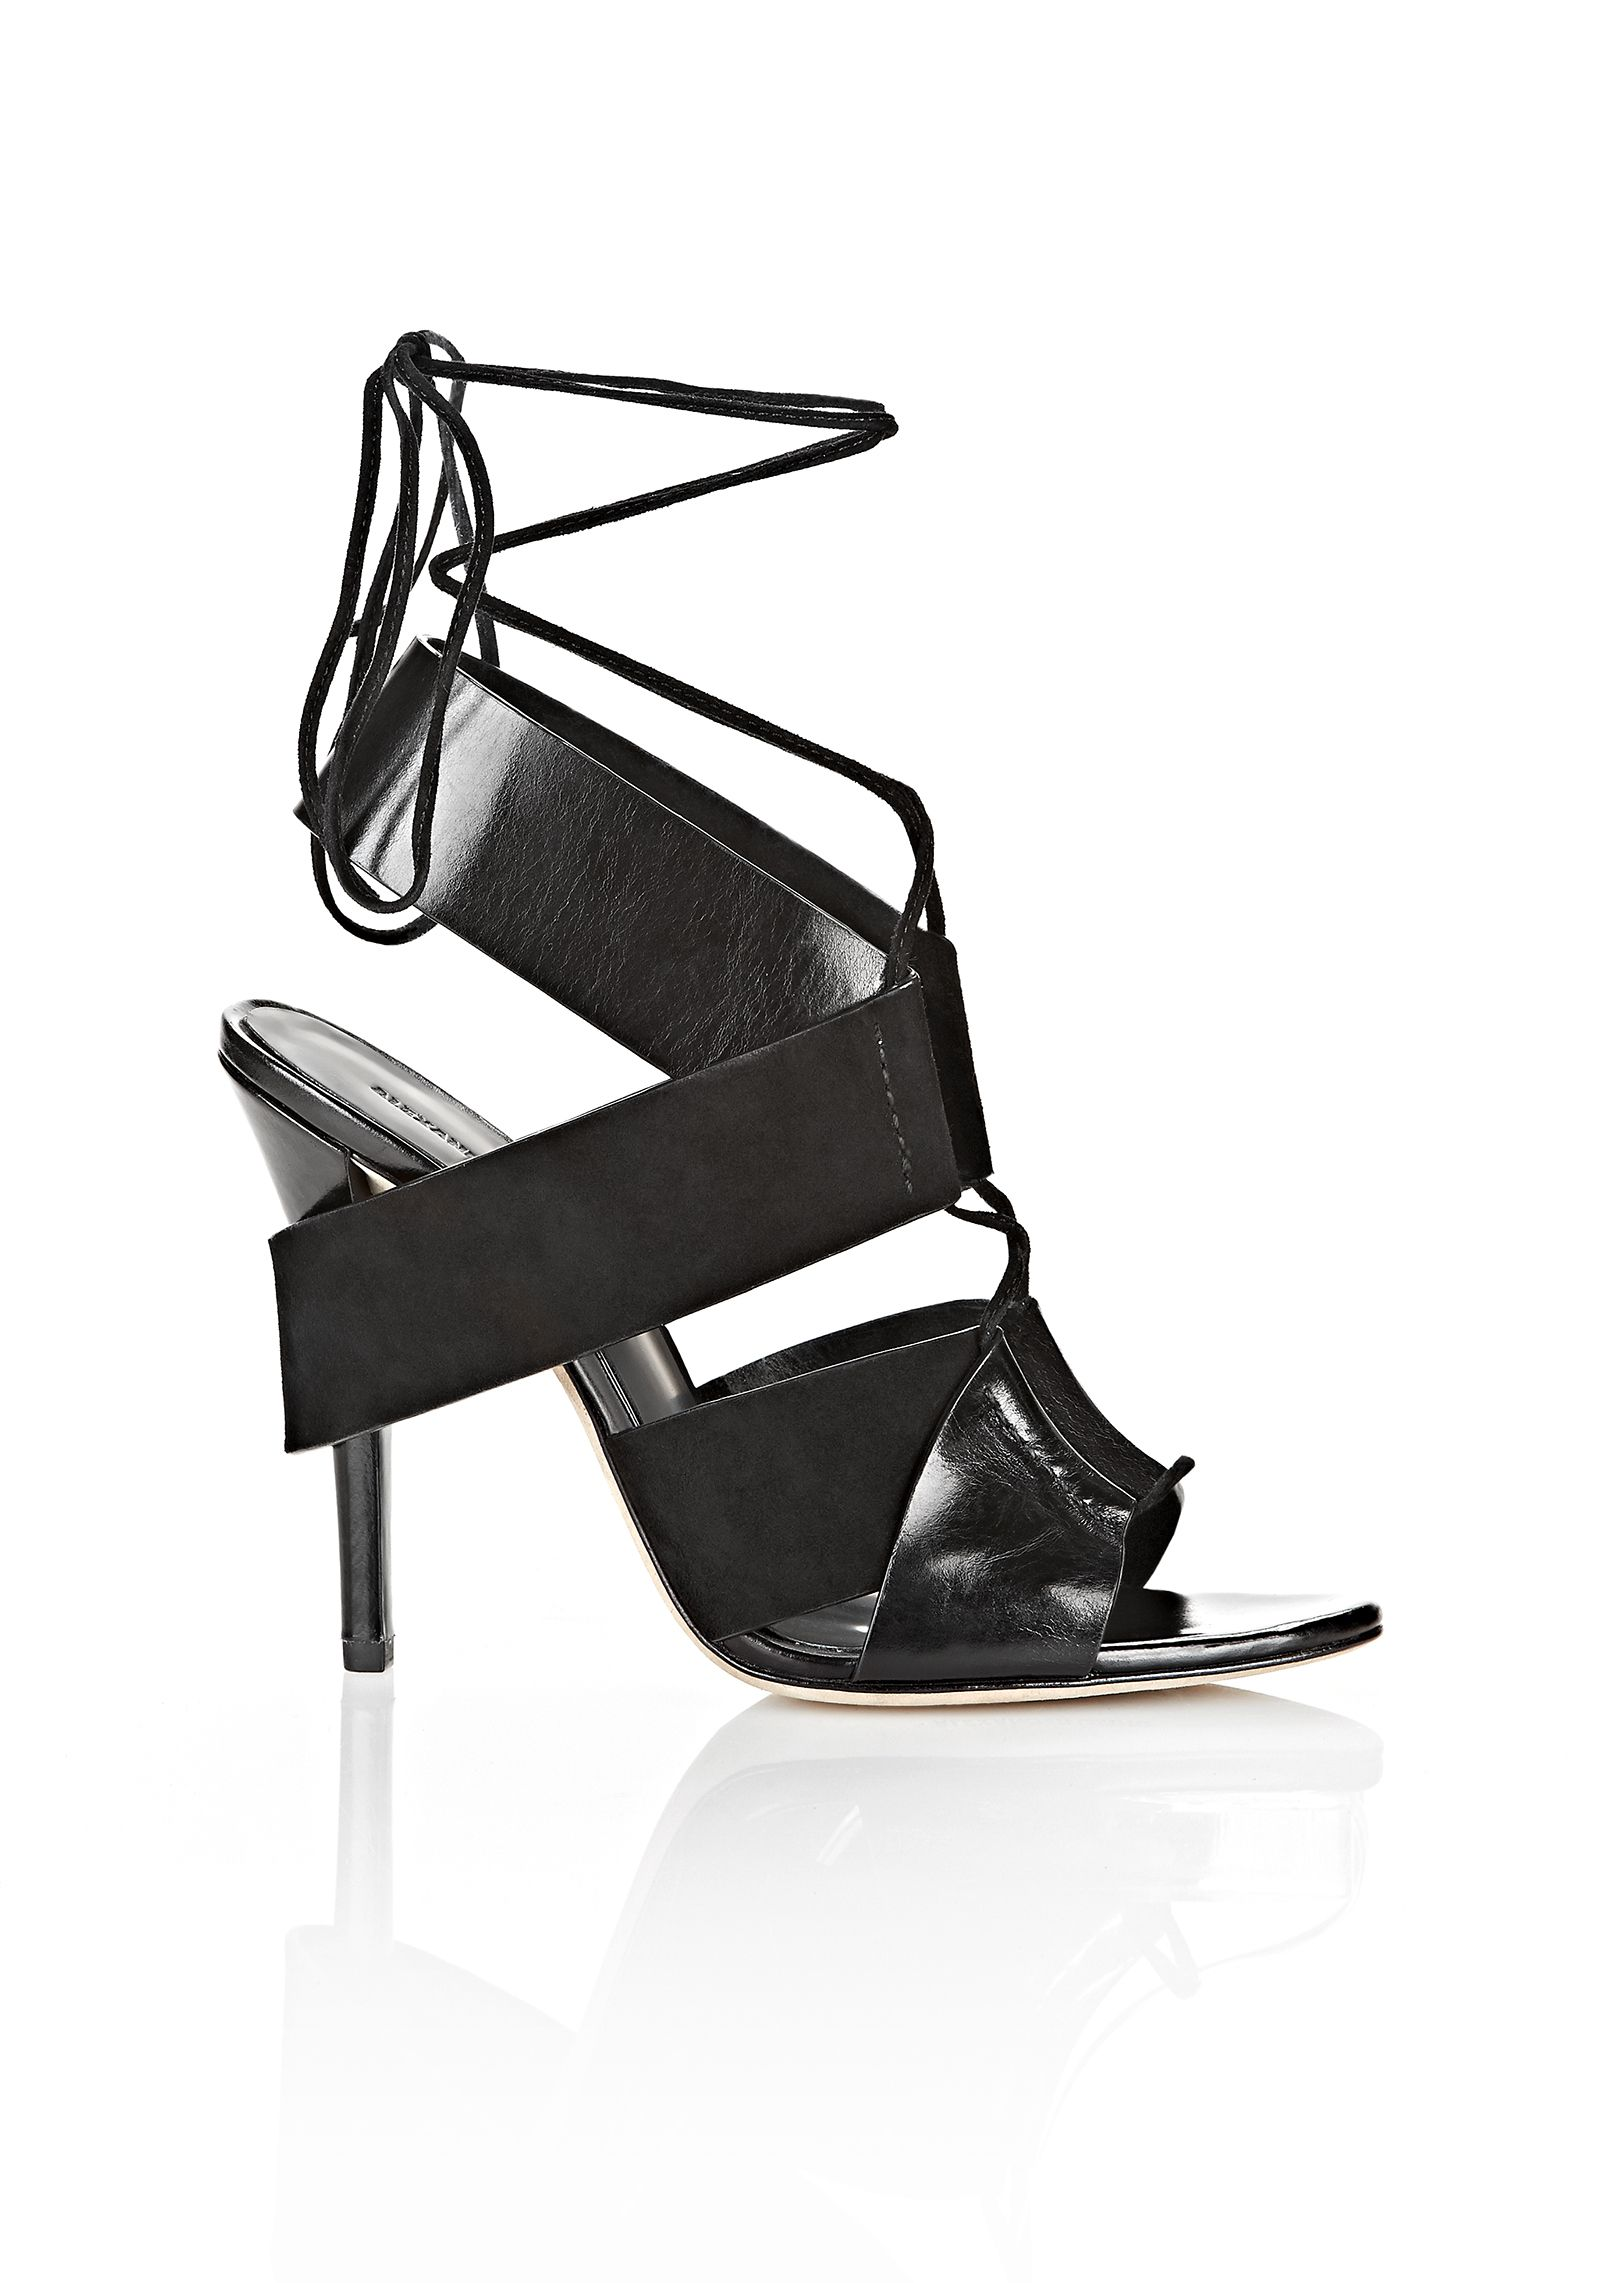 MALGOSIA HIGH HEEL - Sandals Women - Alexander Wang Online Store